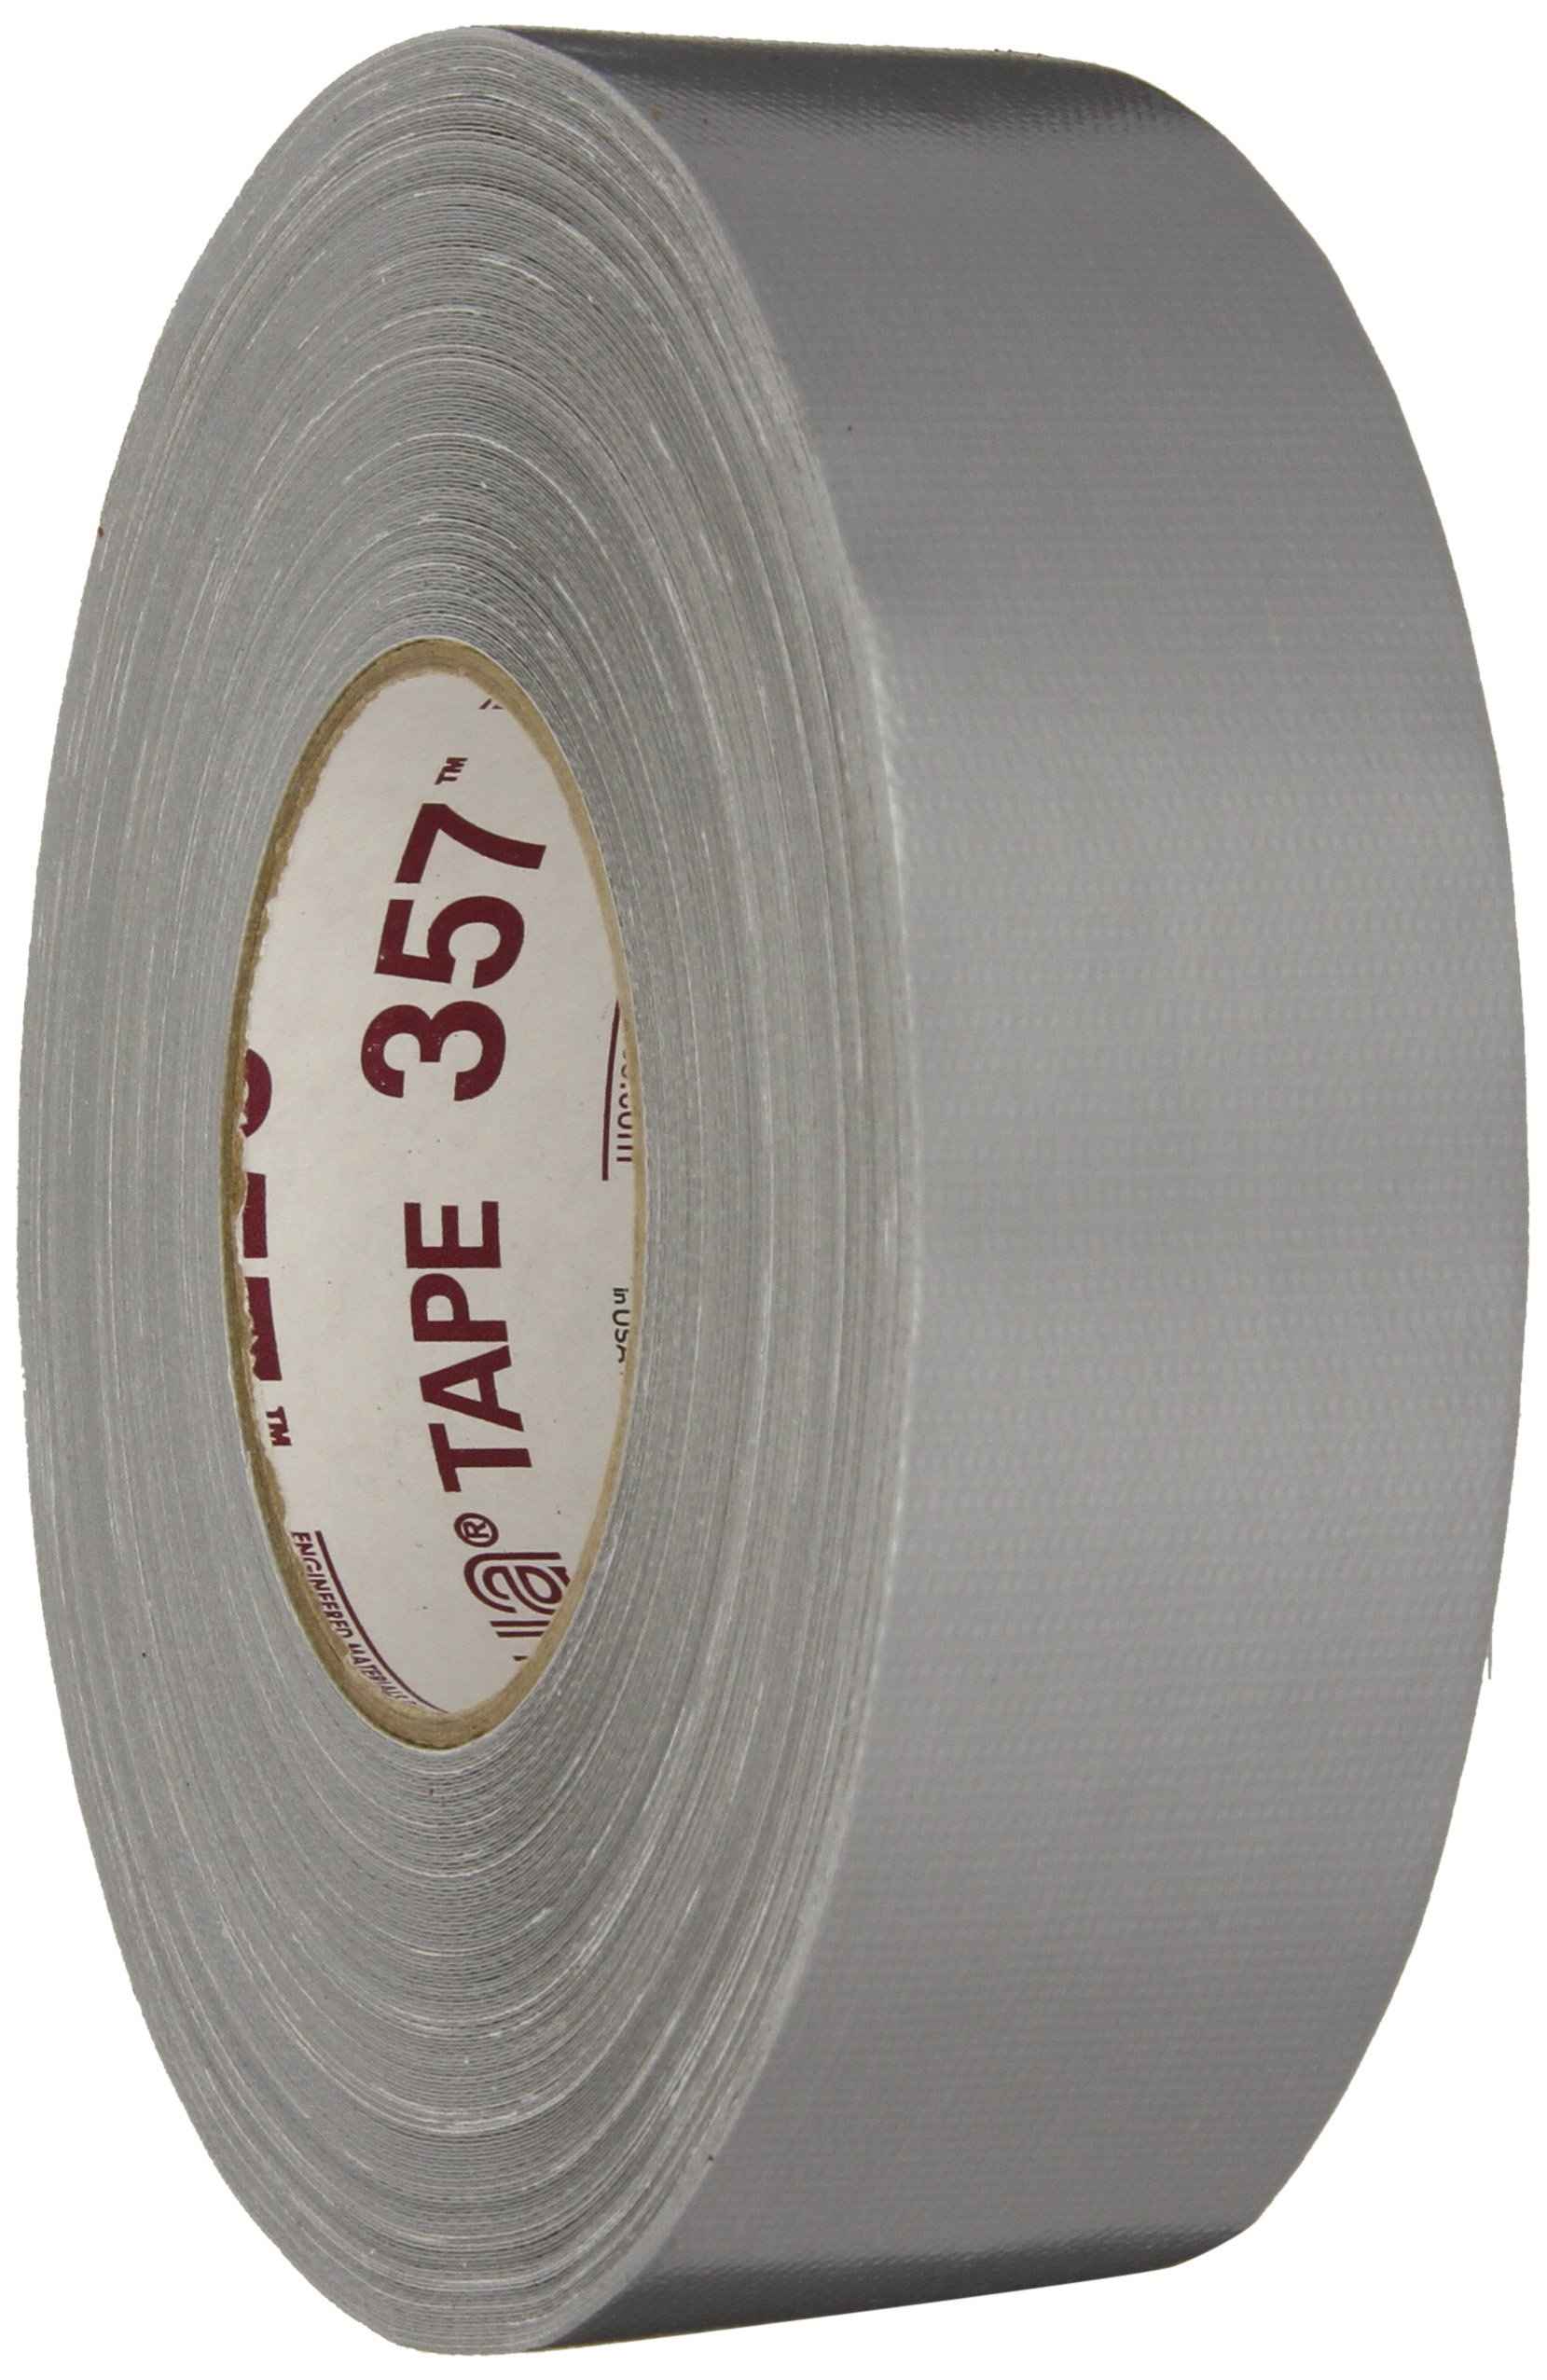 Nashua 357 Polyethylene Coated Cloth Premium Grade Duct Tape, 13 mil Thick, 55 m Length, 48 mm Width, Silver